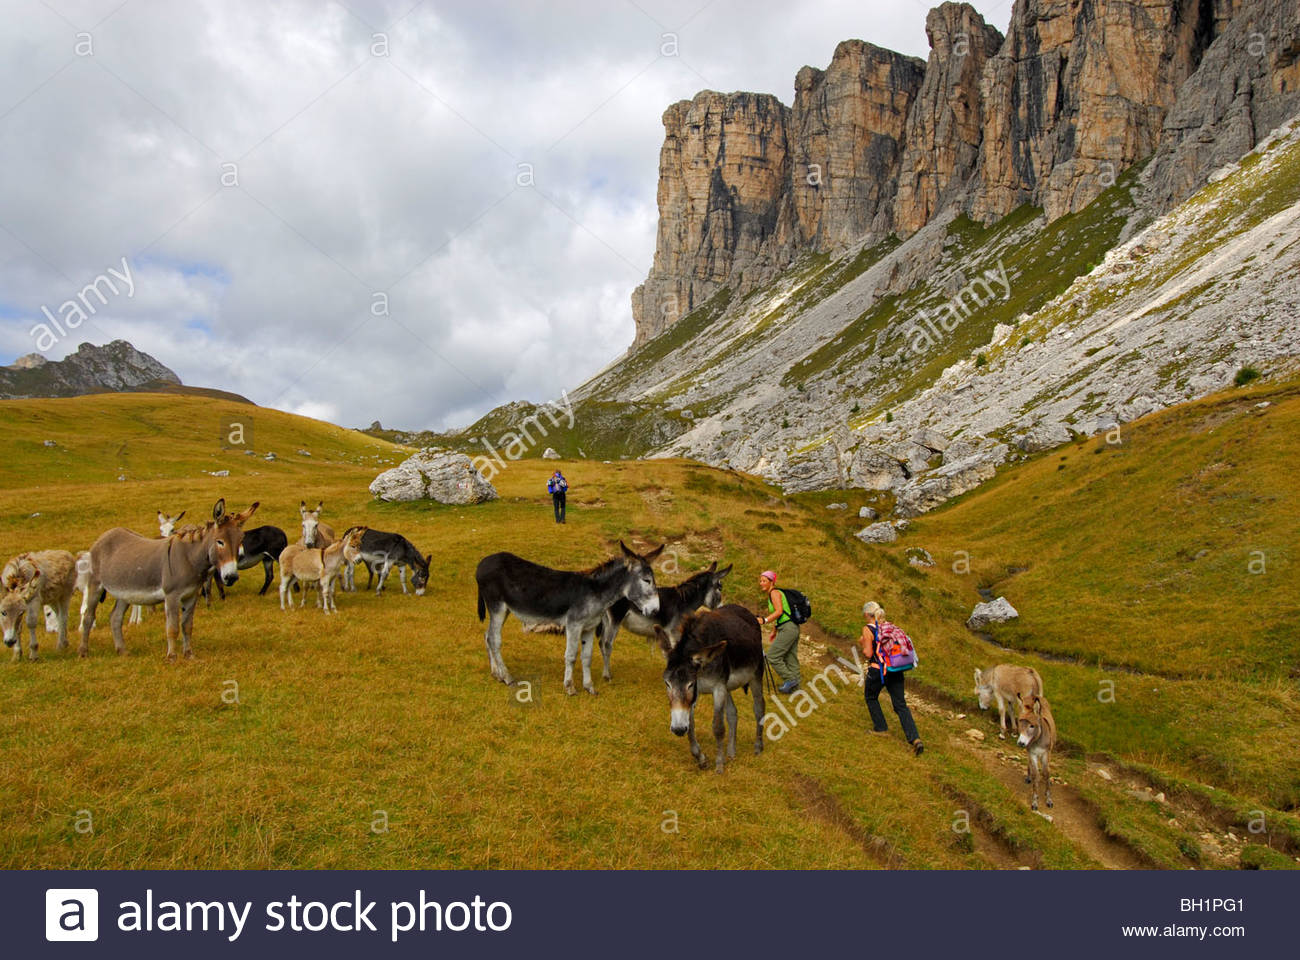 herd of donkeys with group of hikers, Forcella Giau, Alta Via delle Dolomiti No. 1, Dolomites, Cortina, Venezia, - Stock Image